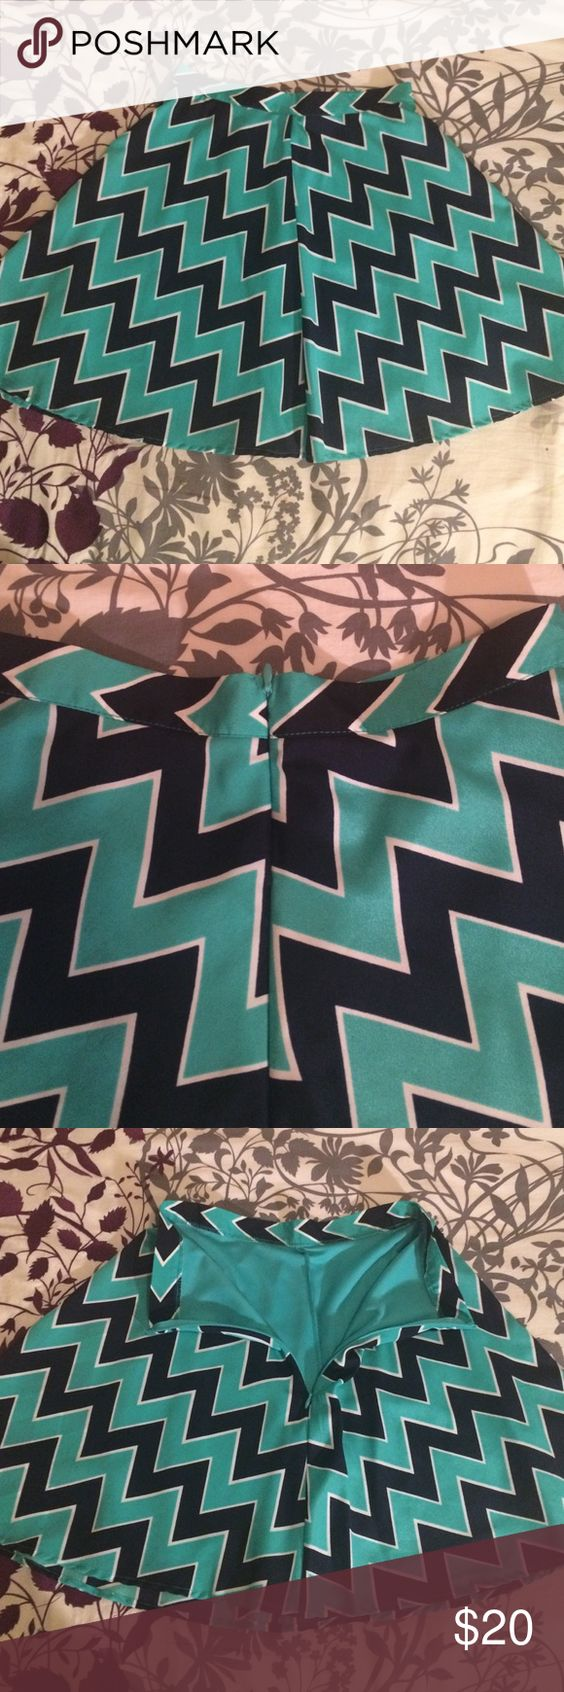 Francesca's teal and navy skirt Bought at Francesca's Collection but brand is Buttons. Teal and navy chevron patterned high waisted skirt. Never worn! Half zip in back. Skirt and lining are both 100% polyester. Francesca's Collections Skirts Midi